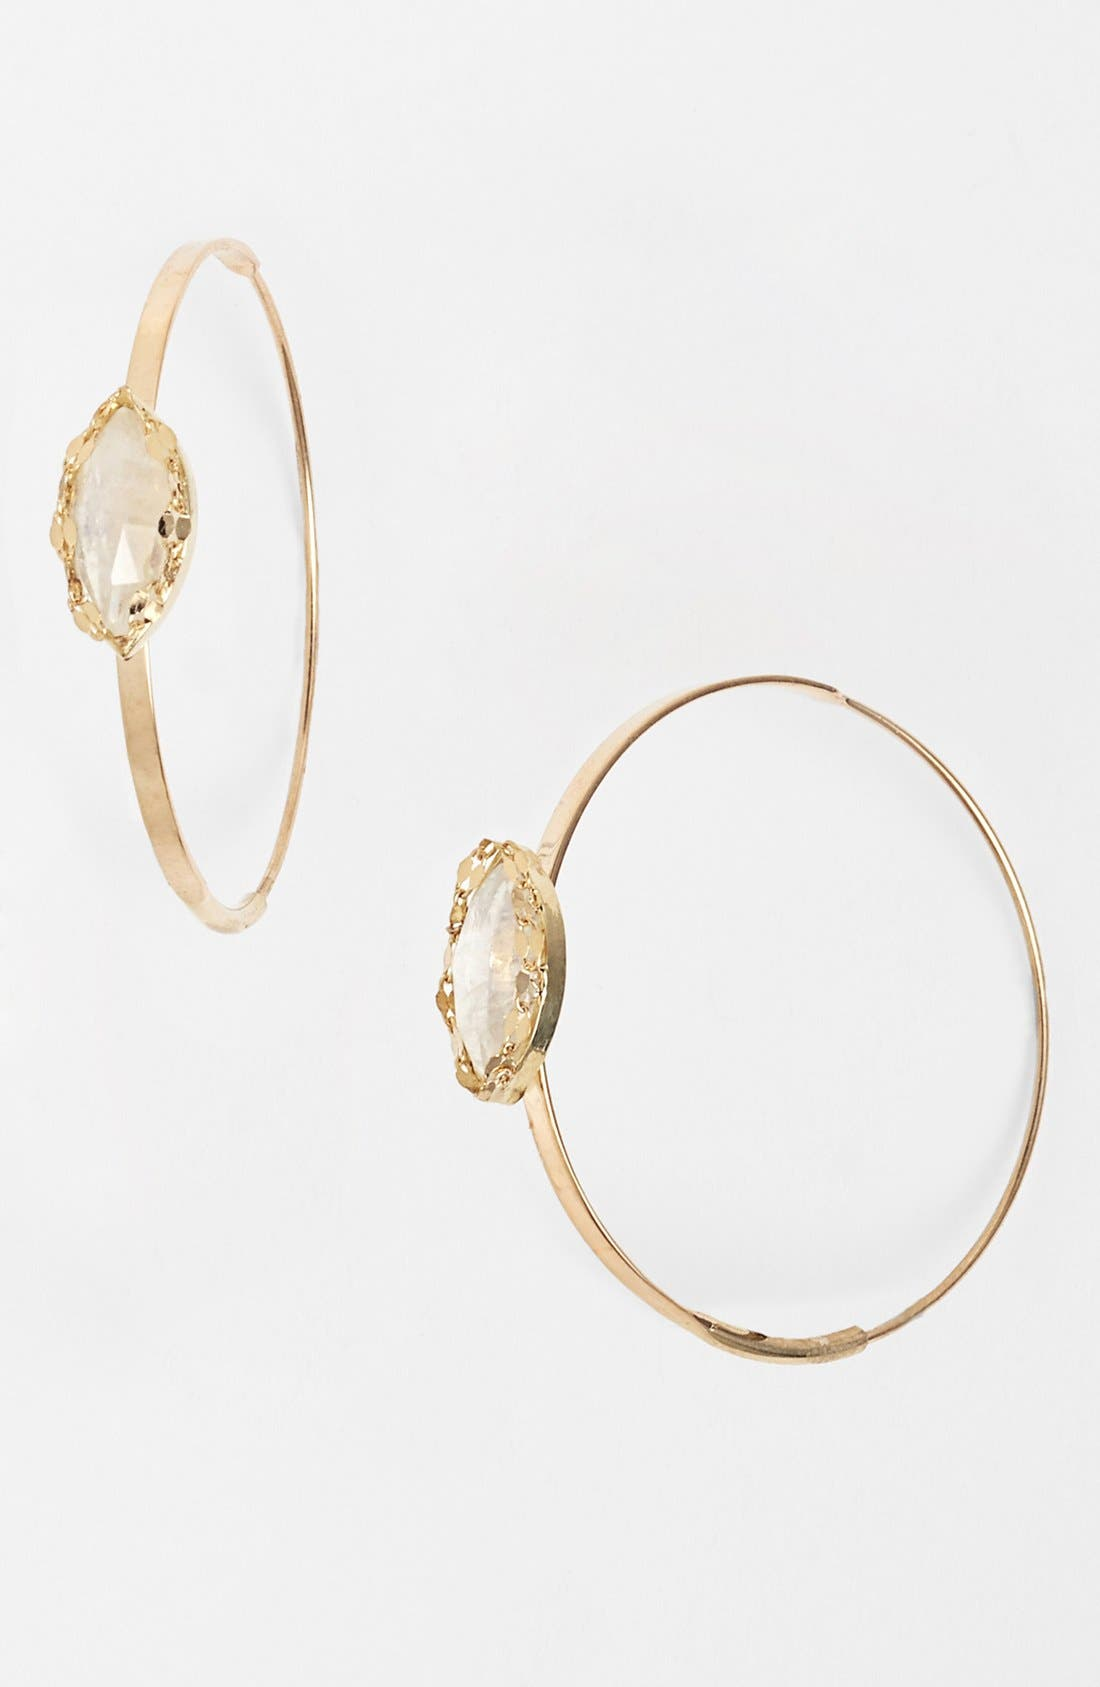 Alternate Image 1 Selected - Lana Jewelry 'Spellbound - Small Flat Magic' Station Hoop Earrings